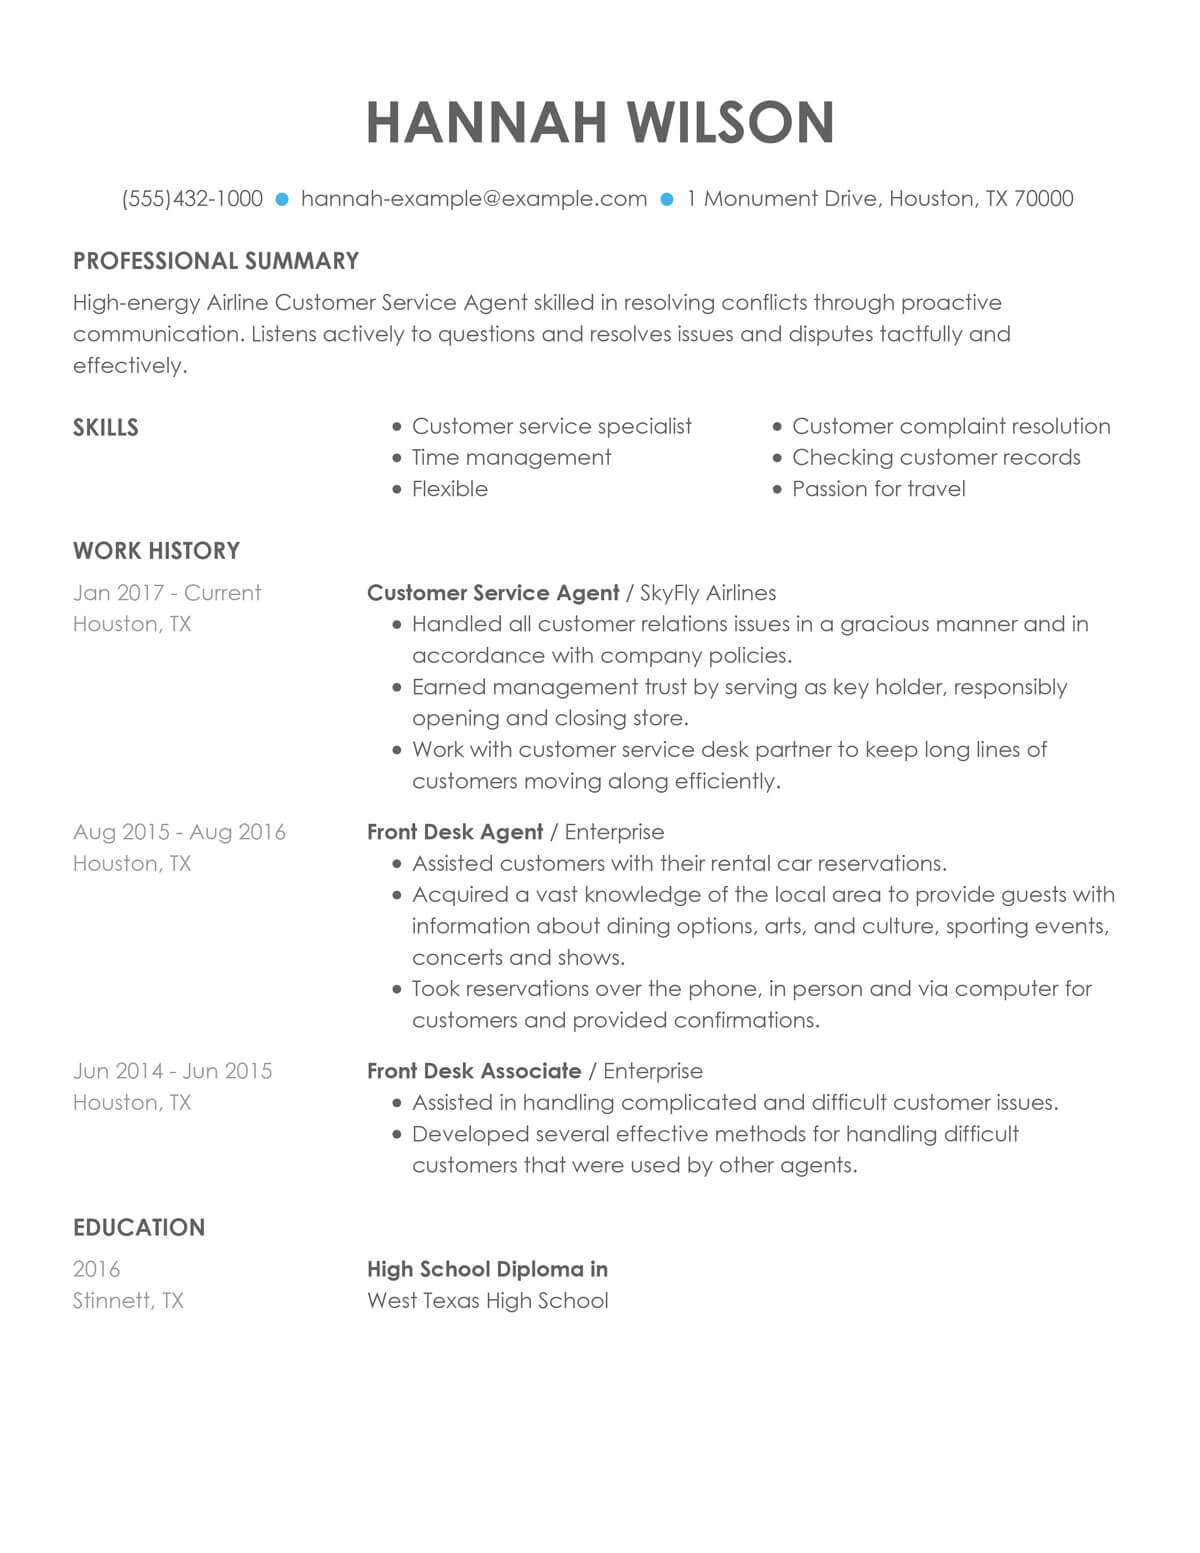 customize our customer representative resume example service bullet points airline agent Resume Customer Service Resume Bullet Points